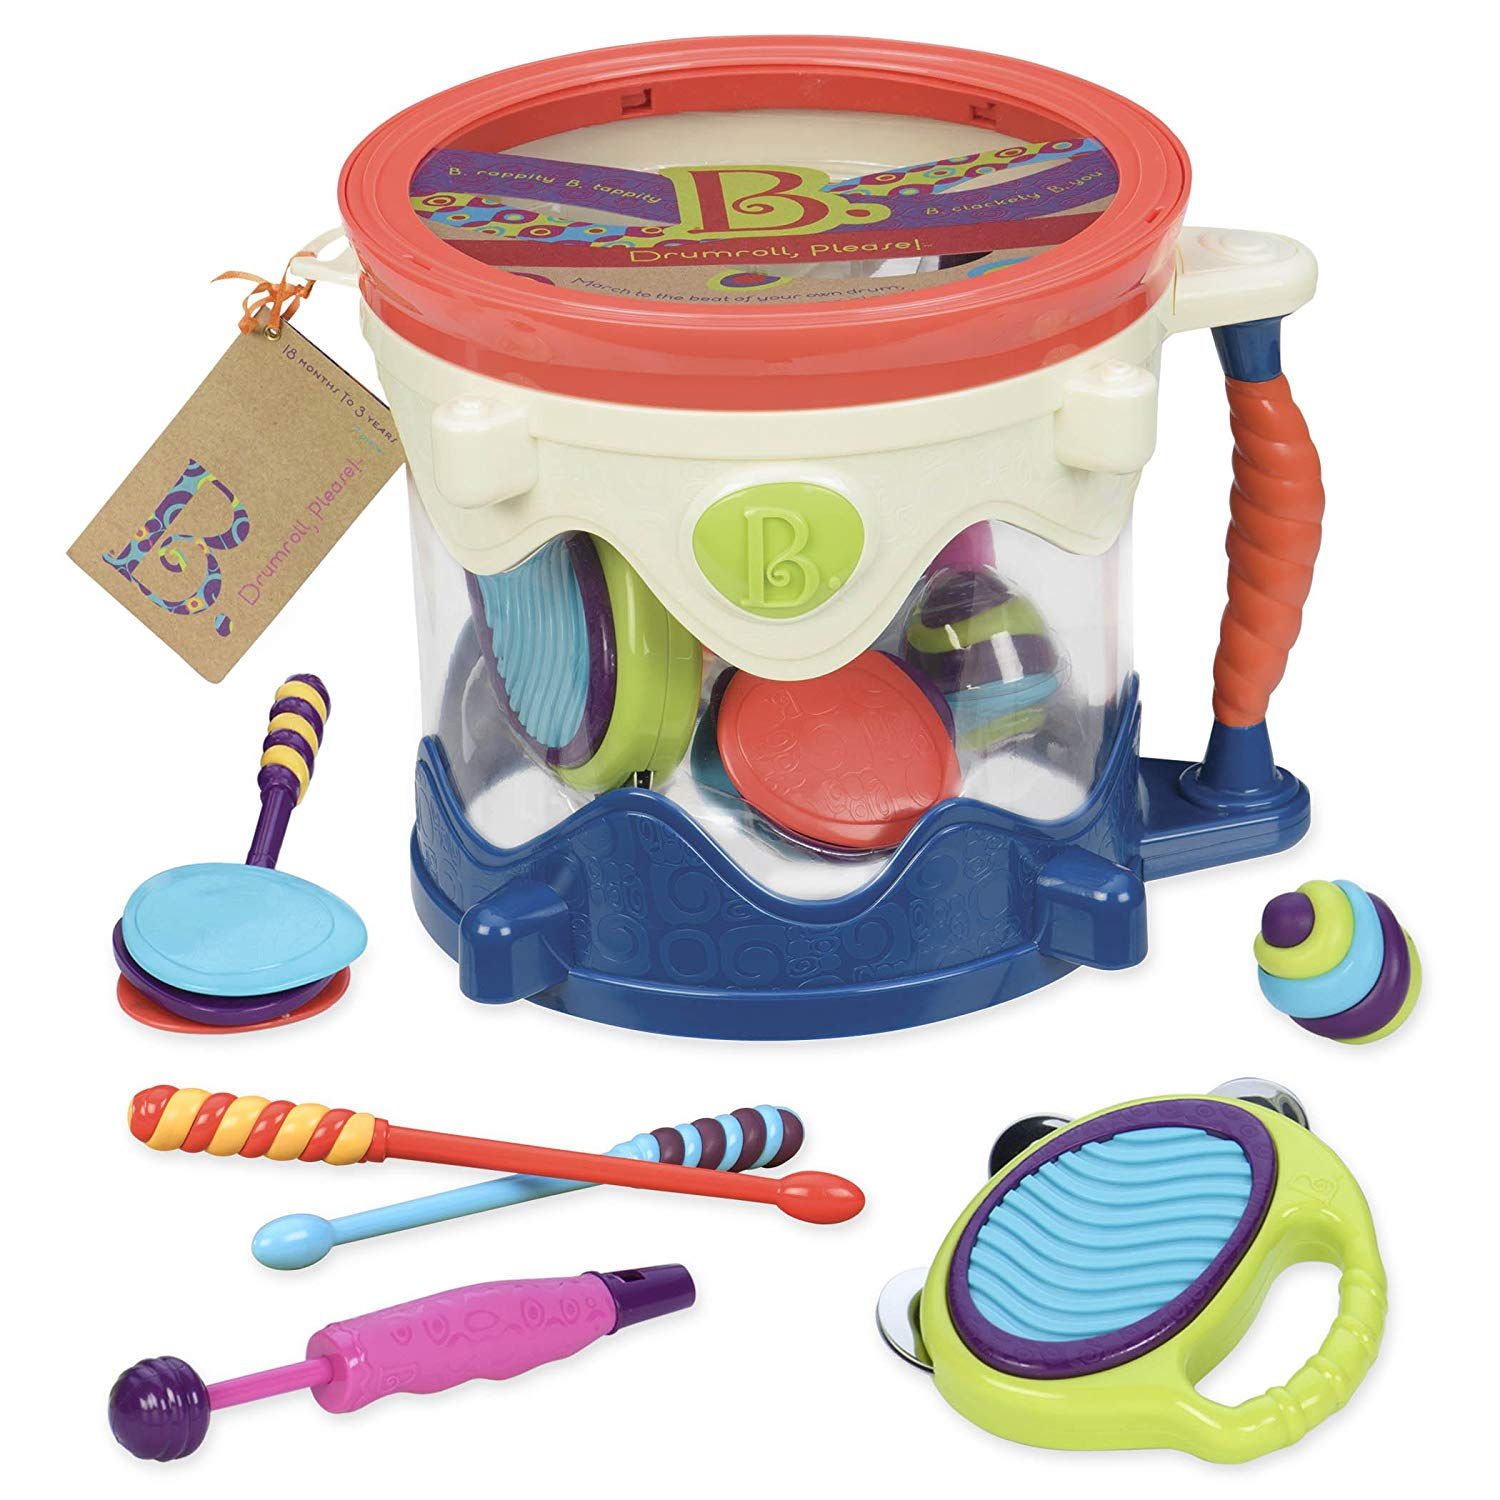 B. Toy Drum Kit for Kids